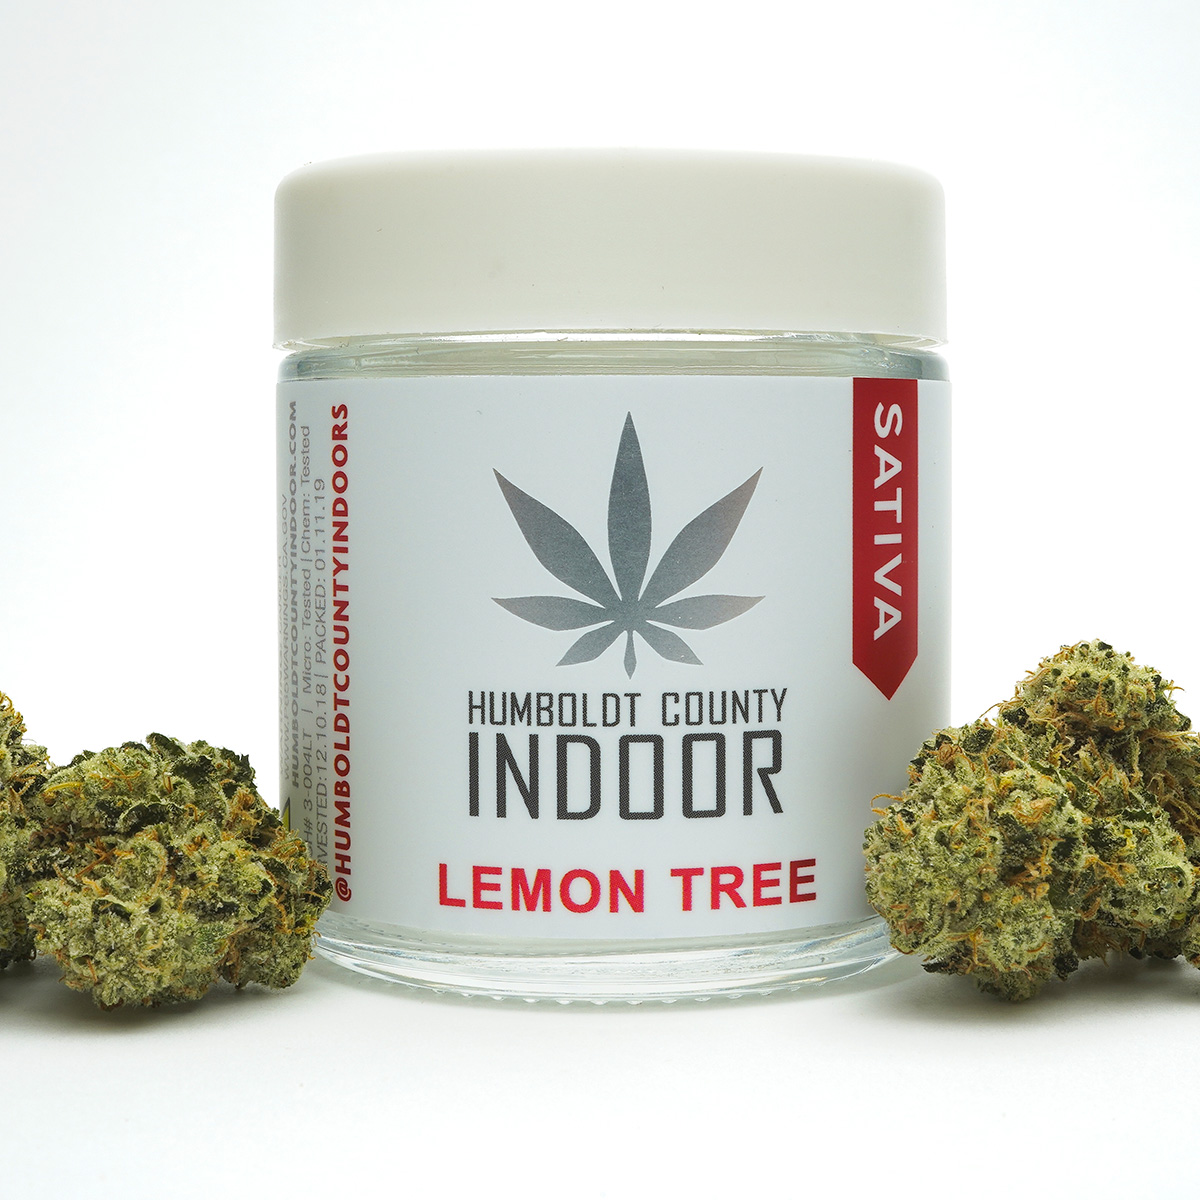 FLOWER CO. supplies of indoor-grown cannabis includes designer flavors like Lemon Tree, Cake Batter, Grape Sorbet, Mimosa, Grape Sorbet.